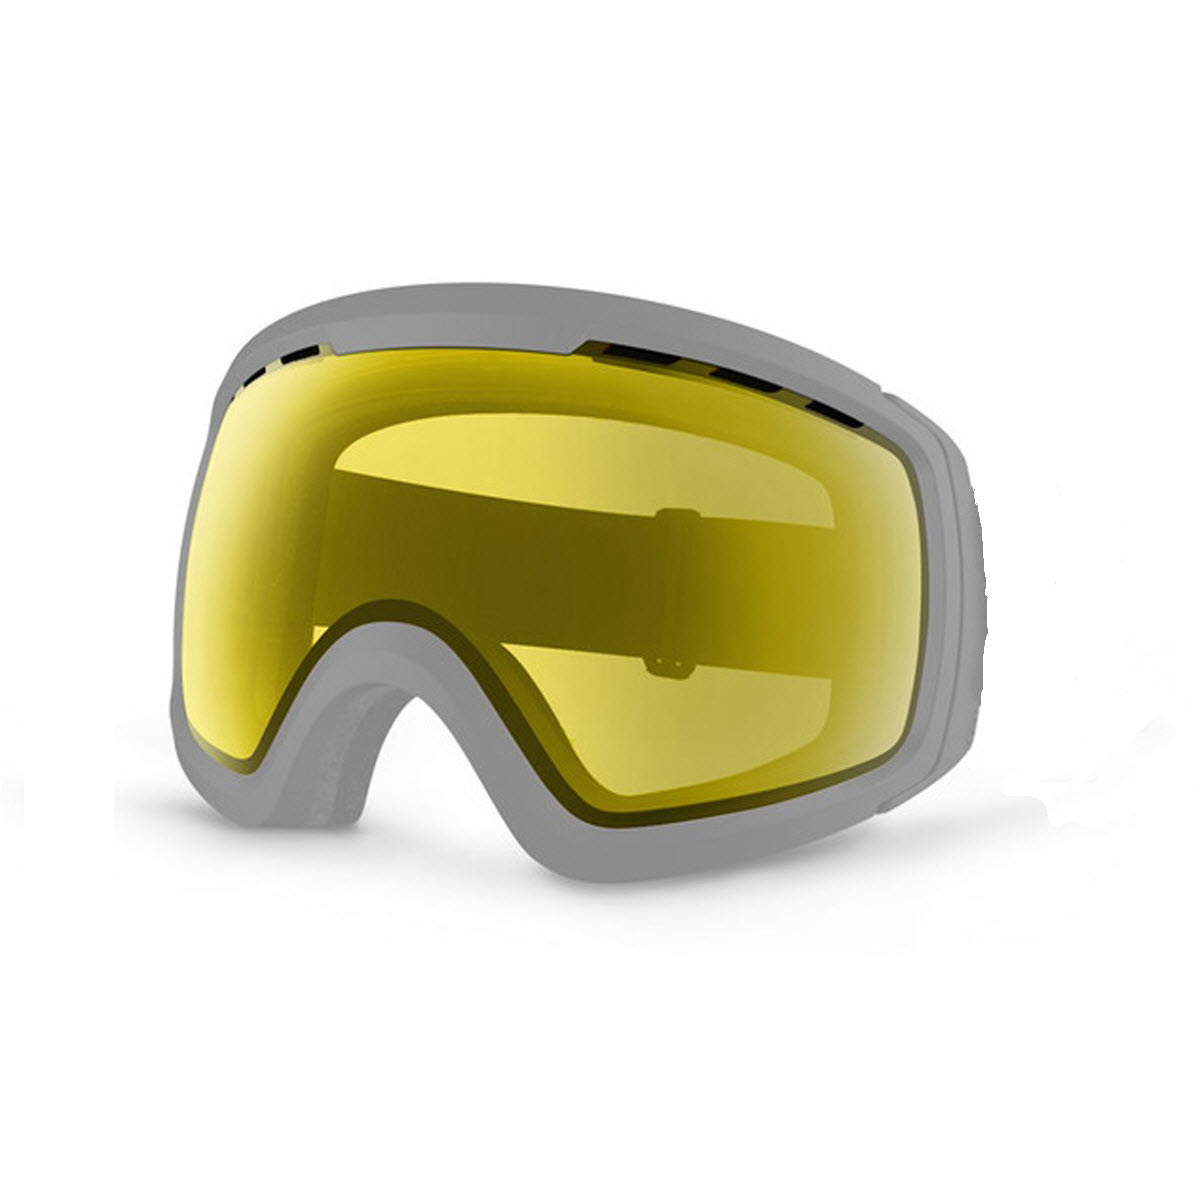 5735791dbed VON ZIPPER Feenom NLS Goggles Replacement Lens - Yellow